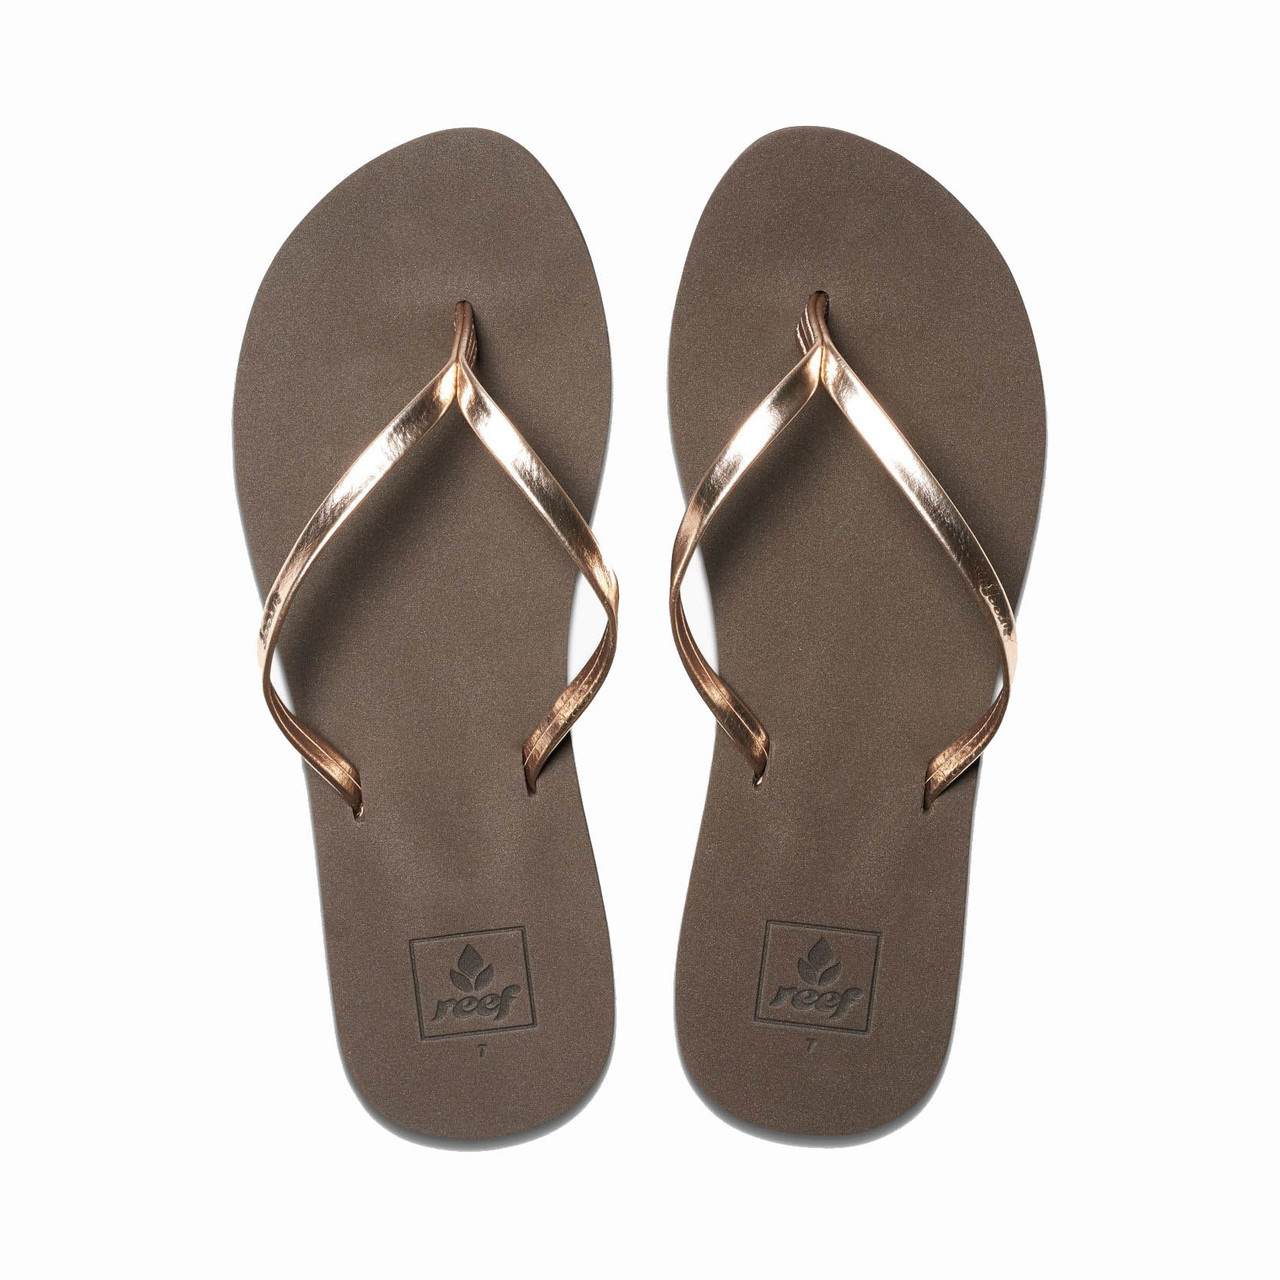 09db0869b4a3 Reef Women s Flip Flops - Bliss Nights - Rose Gold - Surf and Dirt